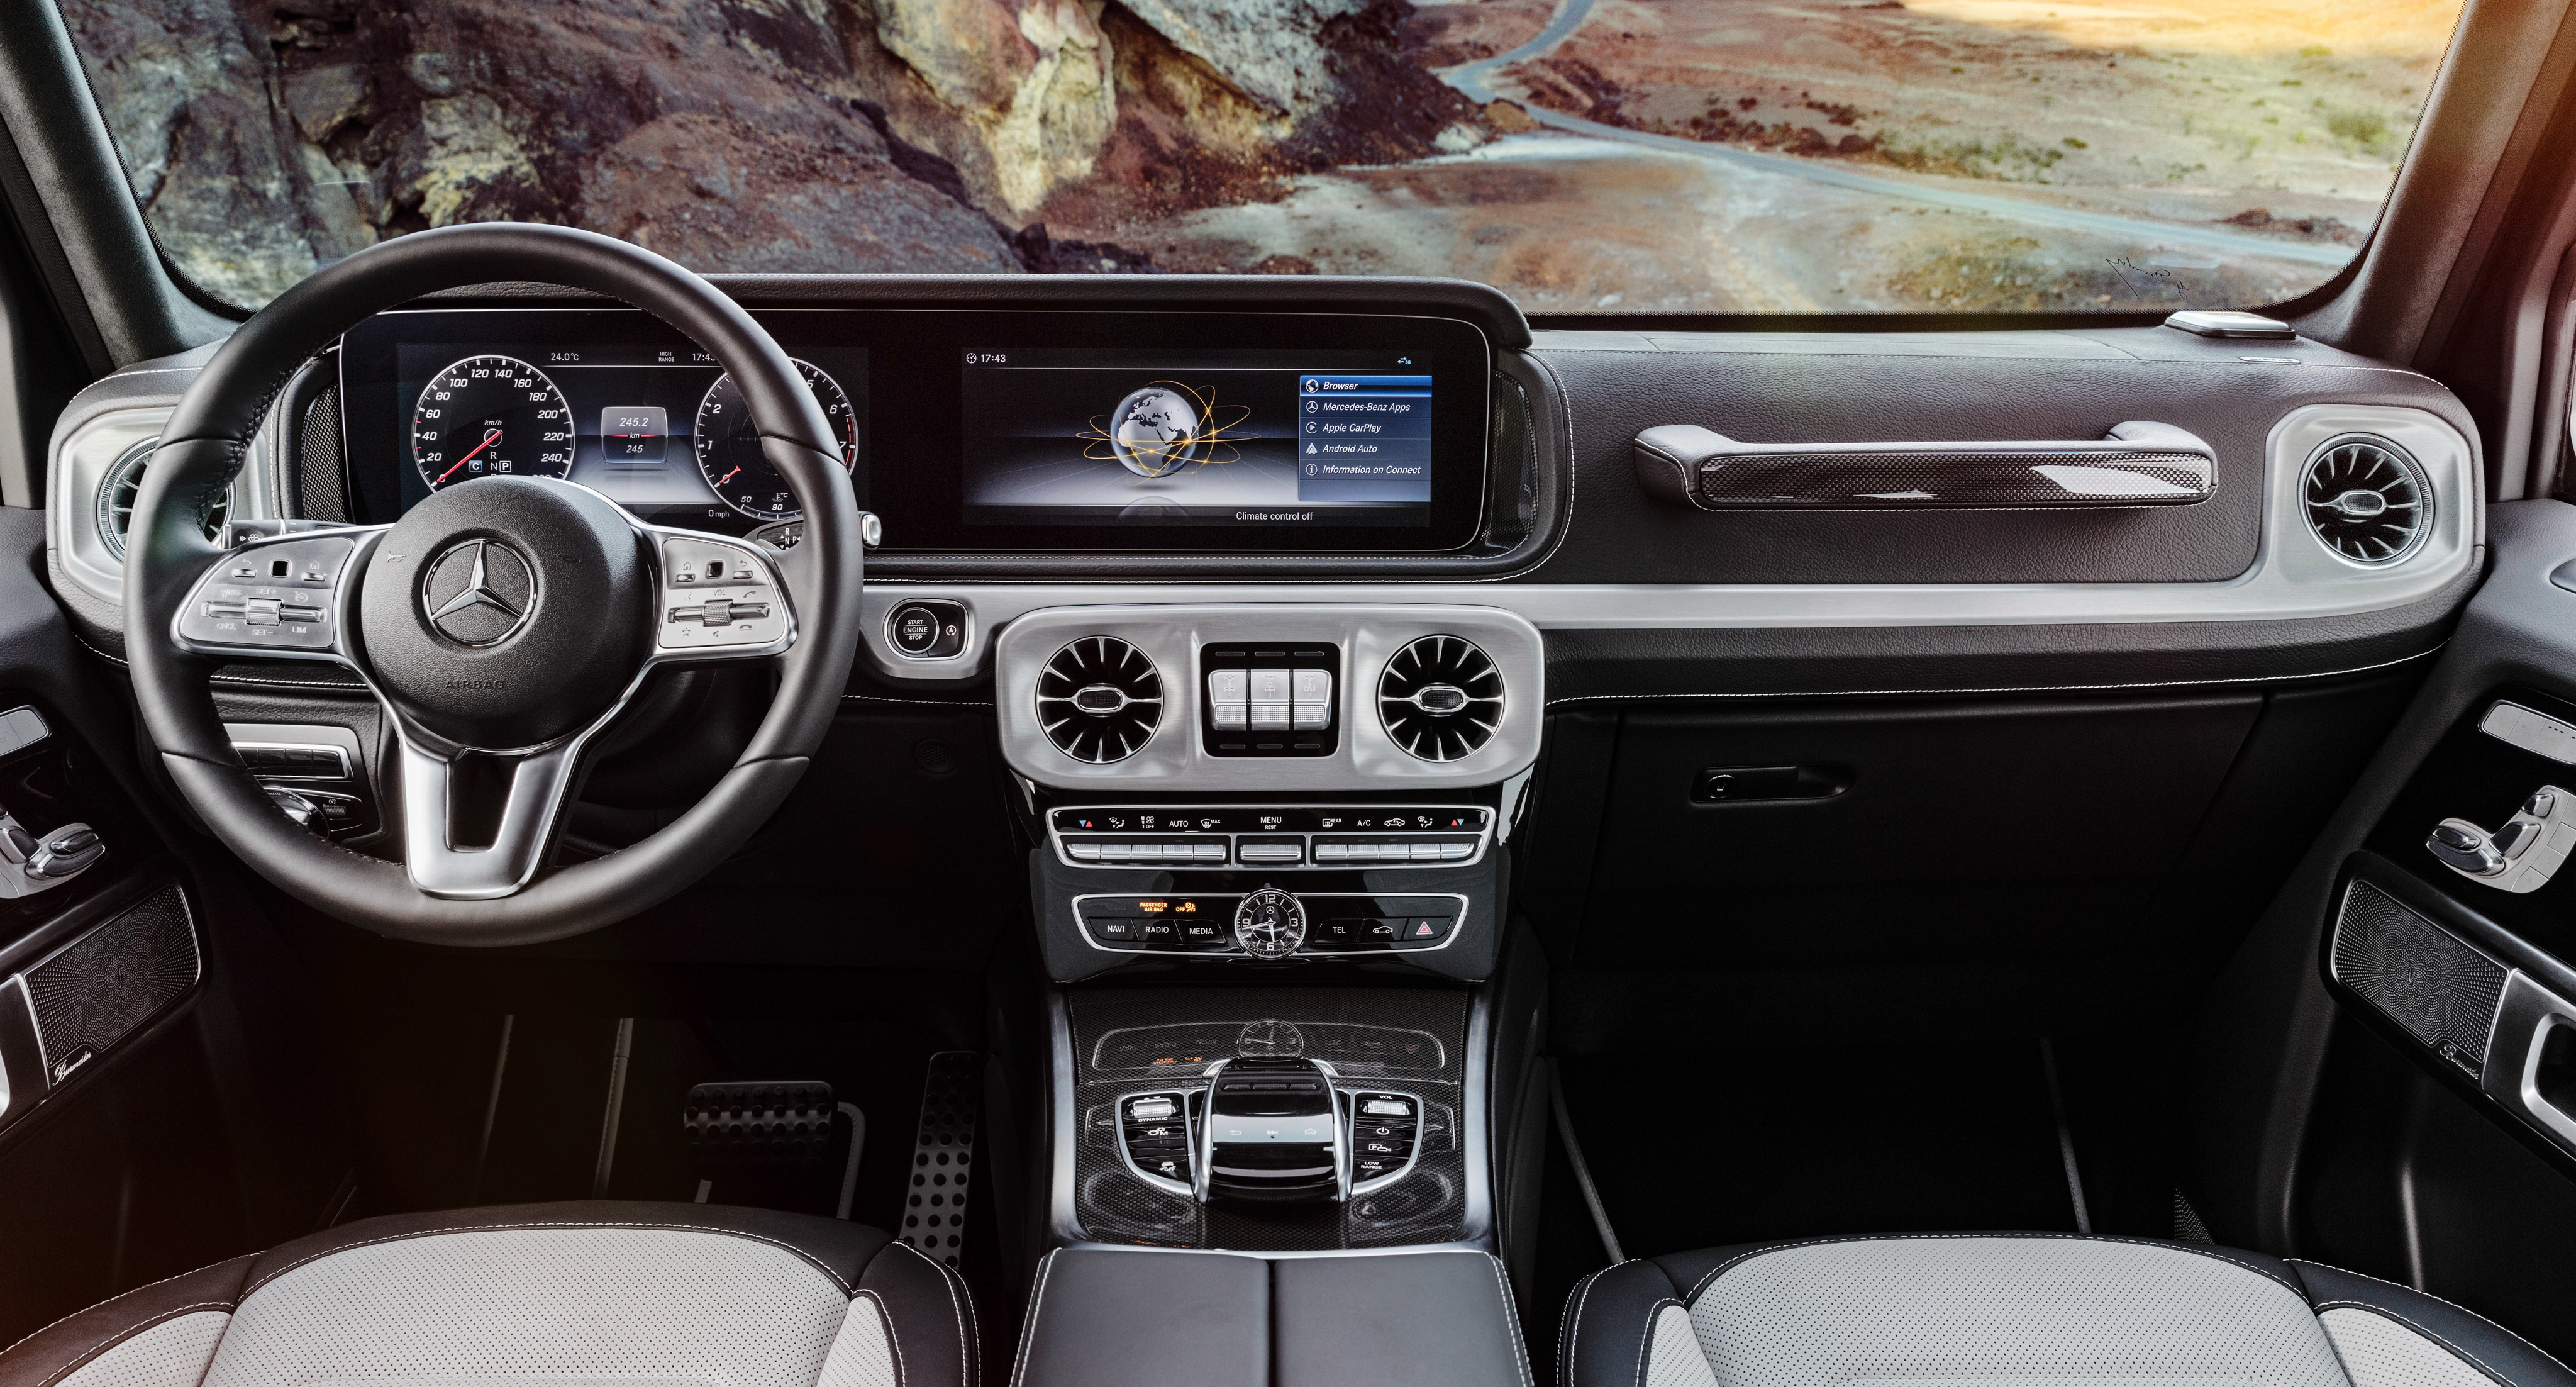 2019 Mercedes G Class Interior Hd Cars 4k Wallpapers Images